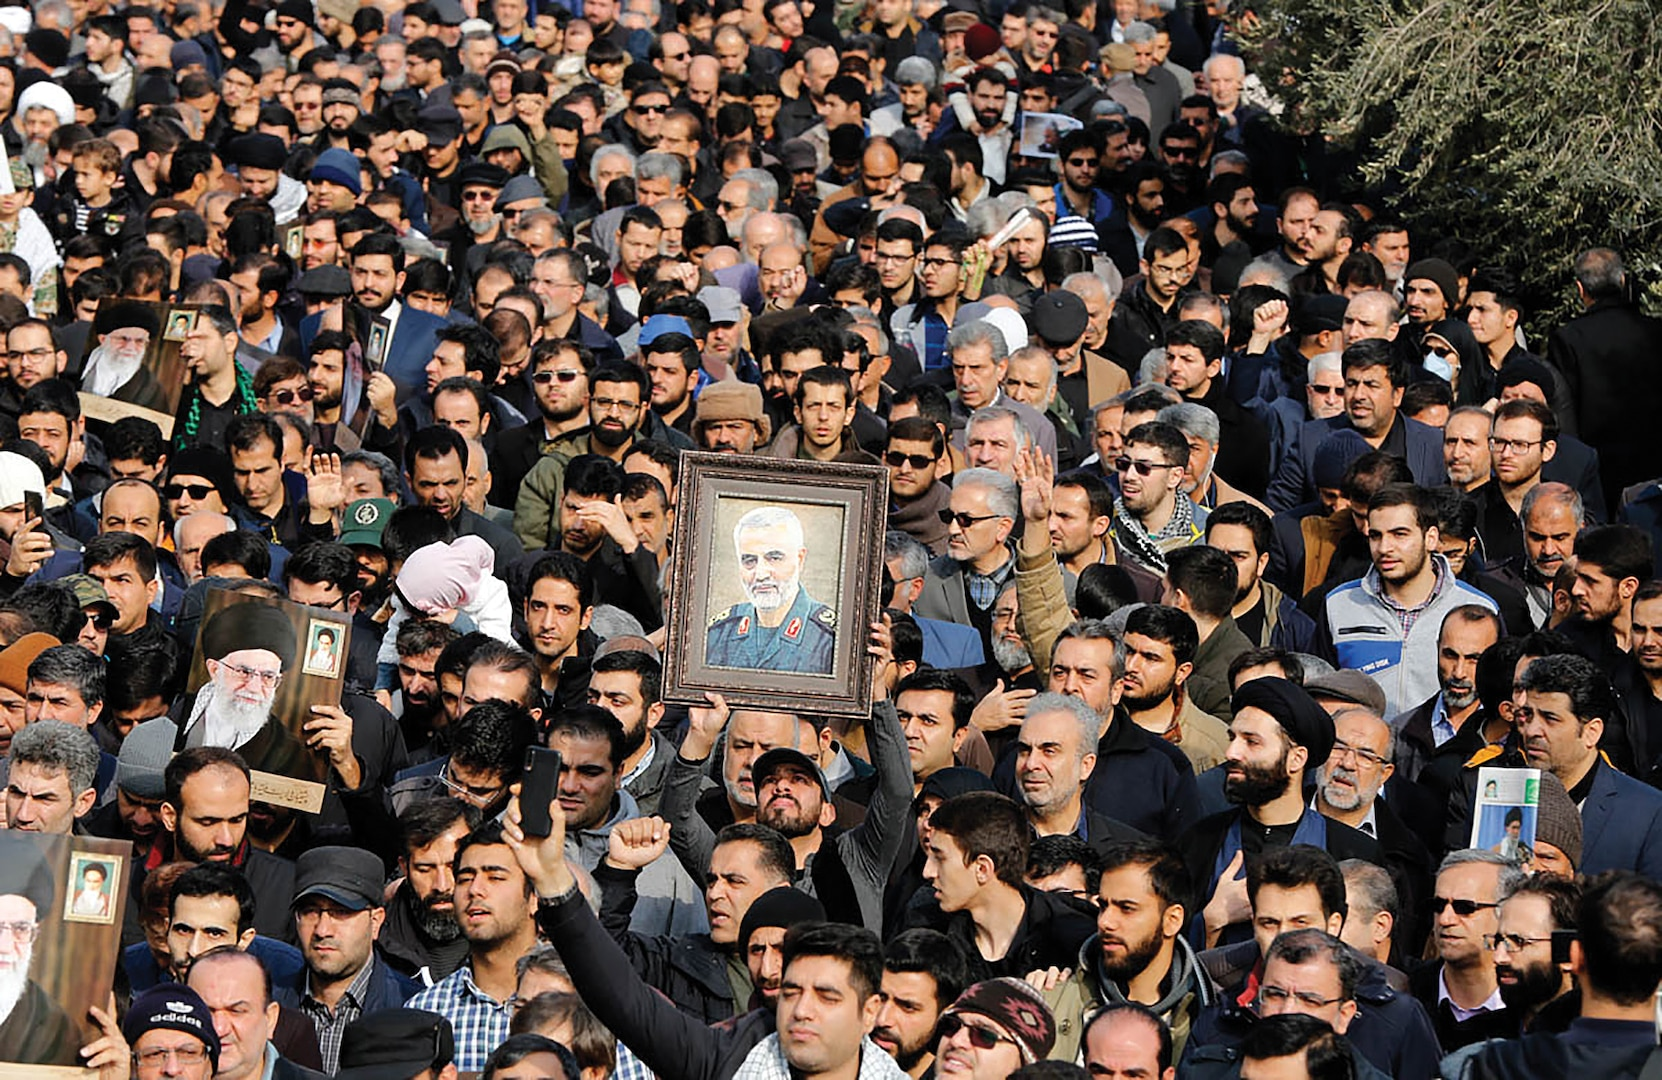 """Funeral of Qassem Soleimani killed in an American drone attack. Soleimani was an Iranian major general in the Islamic Revolutionary Guard Corps (IRGC)."""" (saeediex / Shutterstock.com, Jan 7, 2020)"""